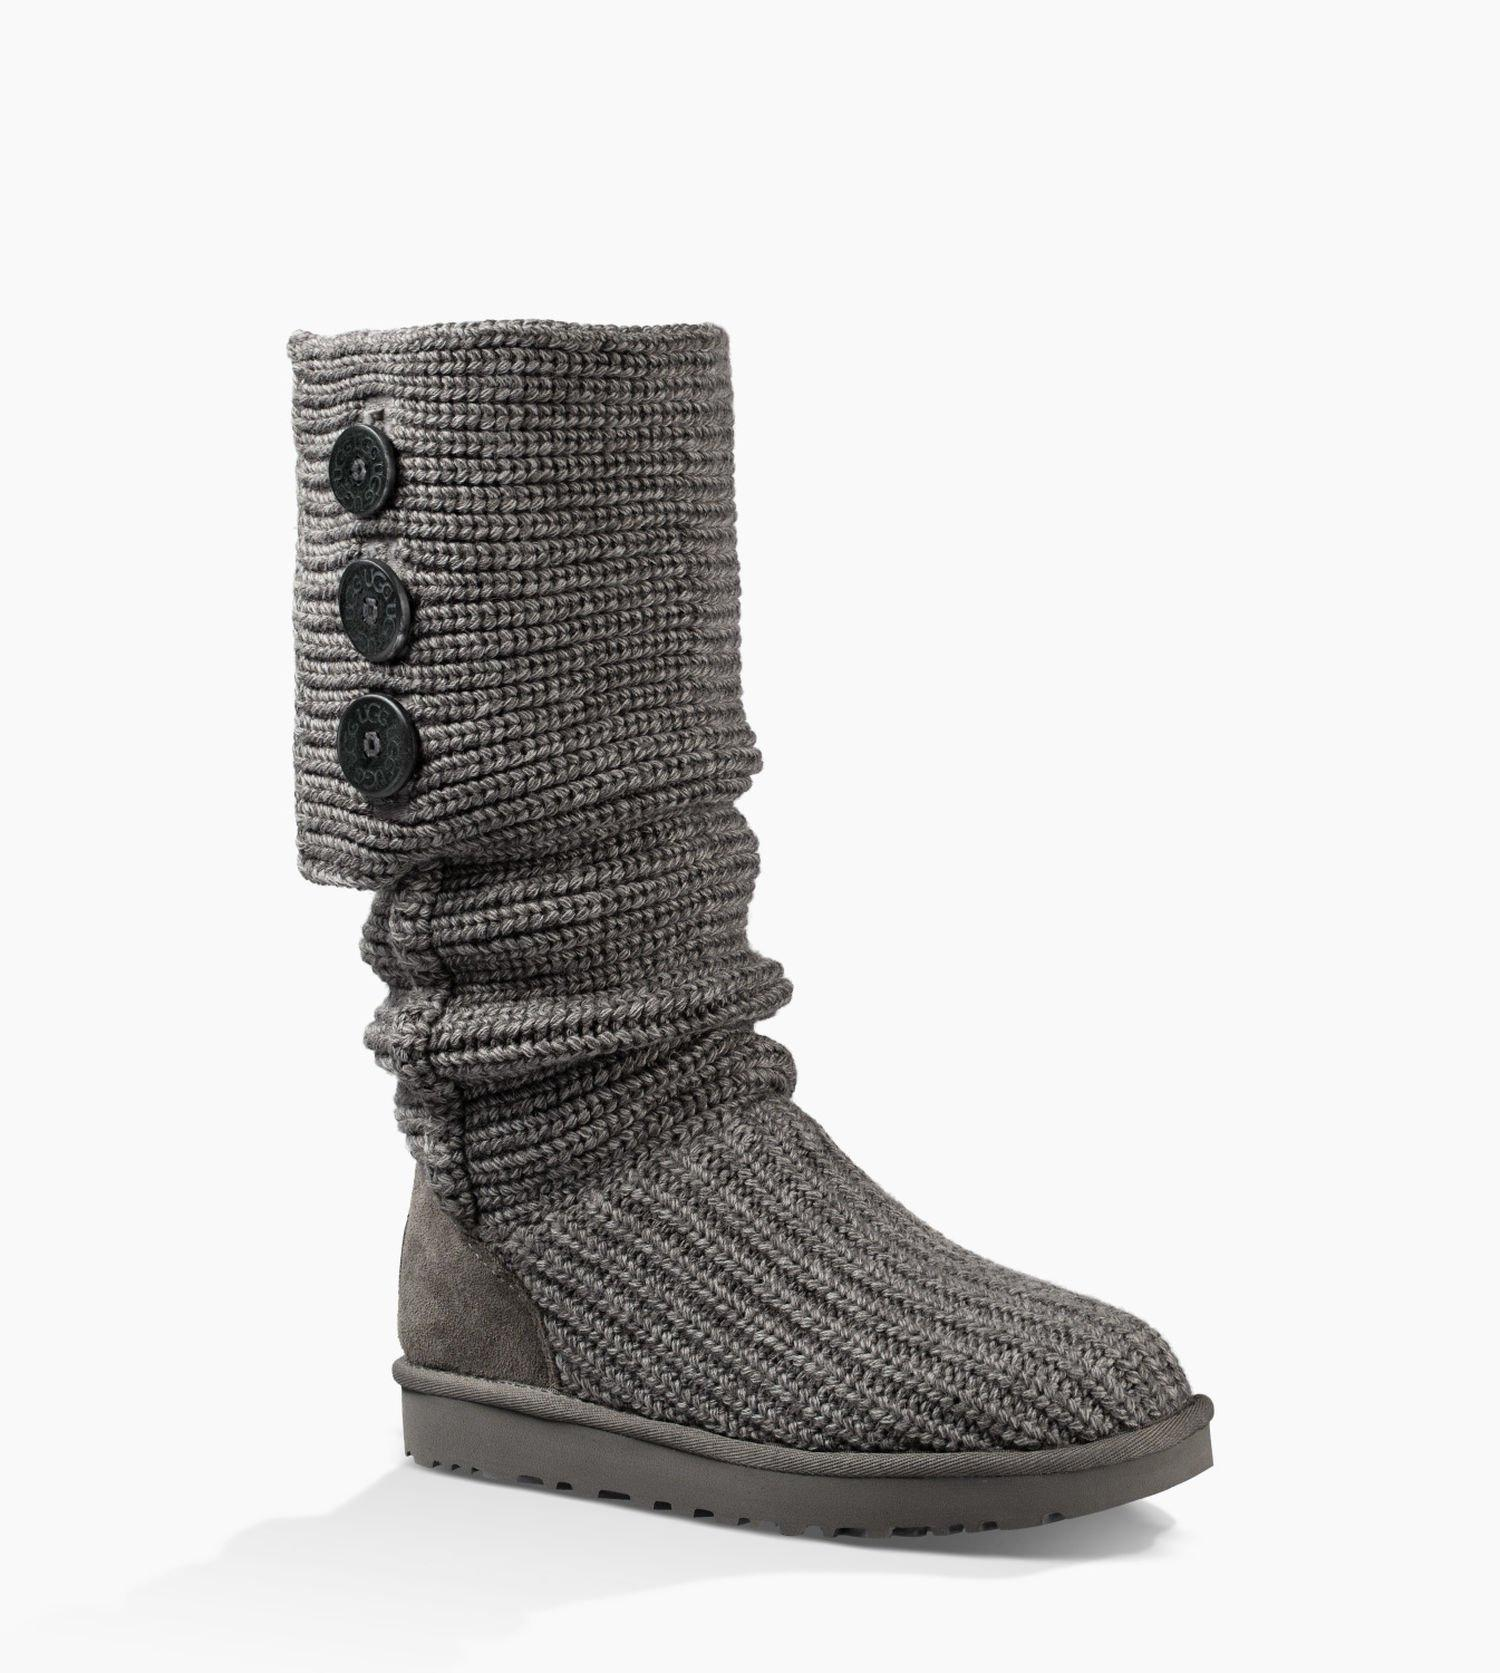 UGG Australia For Her 8 Grey Boots. 1234